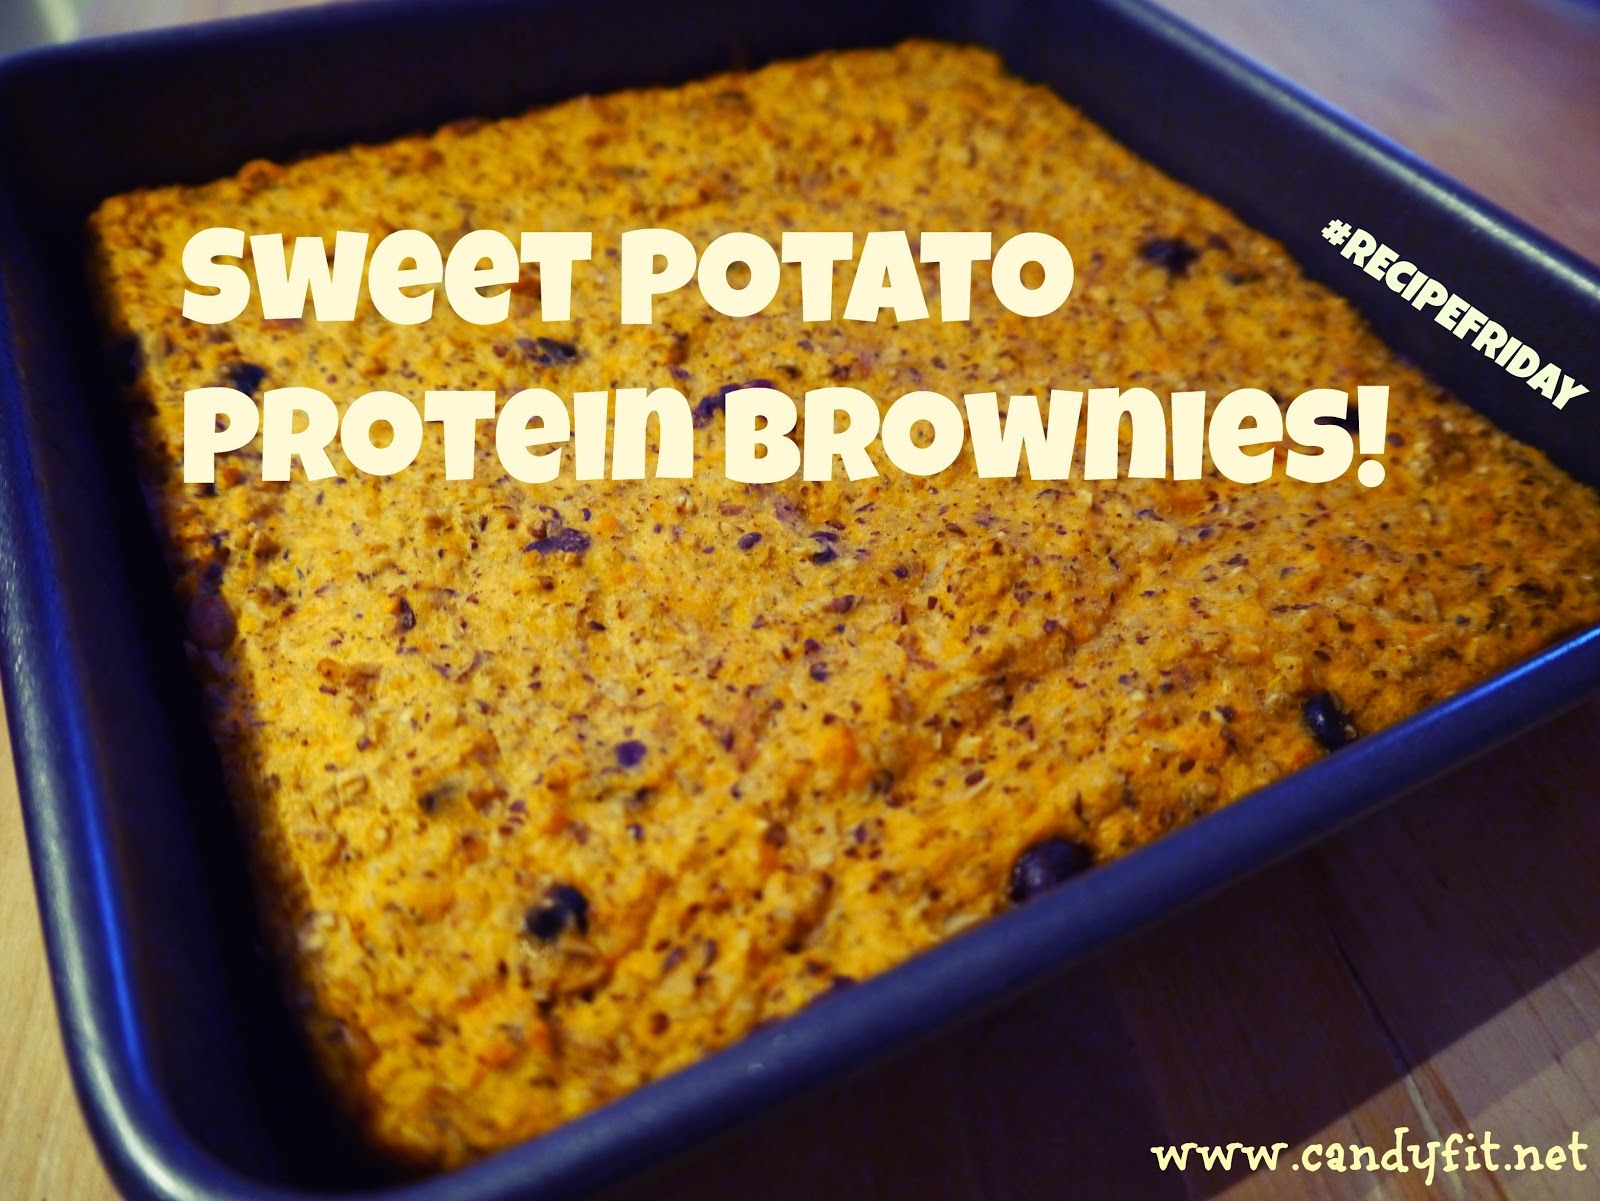 *CaNdY FiT*: #RECIPEFRIDAY: Sweet Potato Protein Brownies (or bites)! #fitfluential #EAT